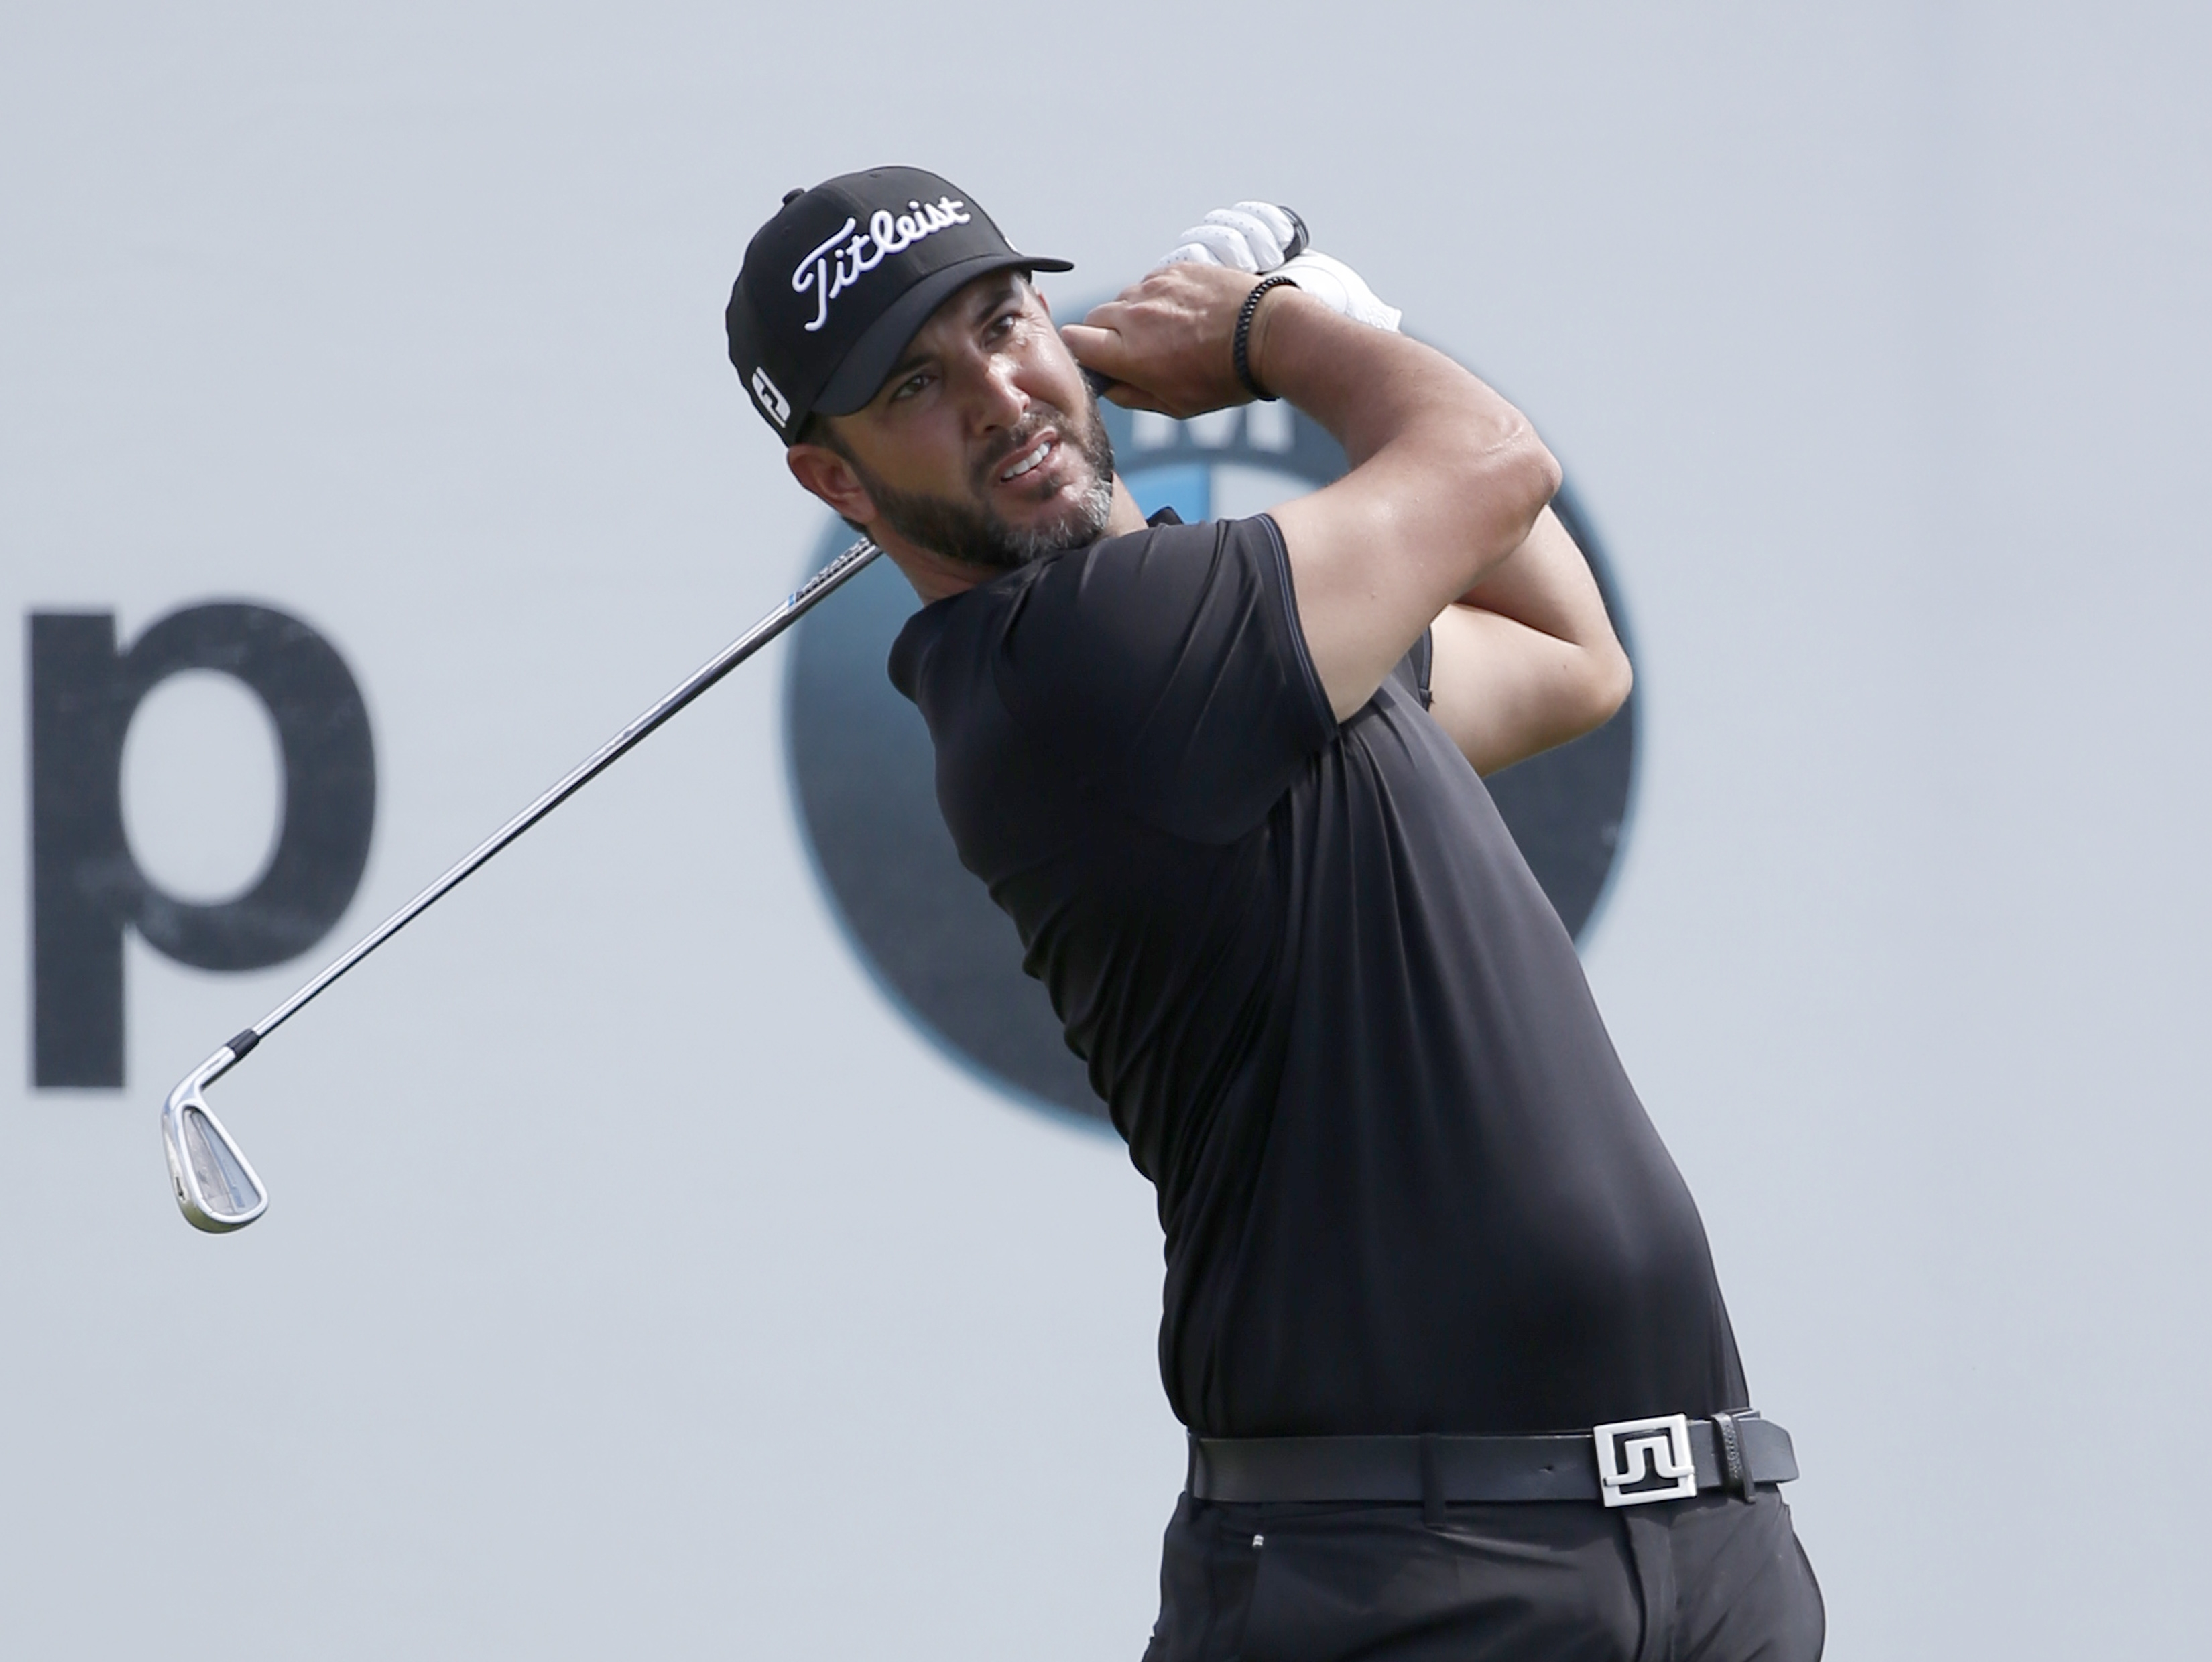 Scott Piercy watches his tee shot on the first hole during the third round of the BMW Championship golf tournament at Conway Farms Golf Club, Sunday, Sept. 20, 2015, in Lake Forest, Ill. (AP Photo/Charles Rex Arbogast)